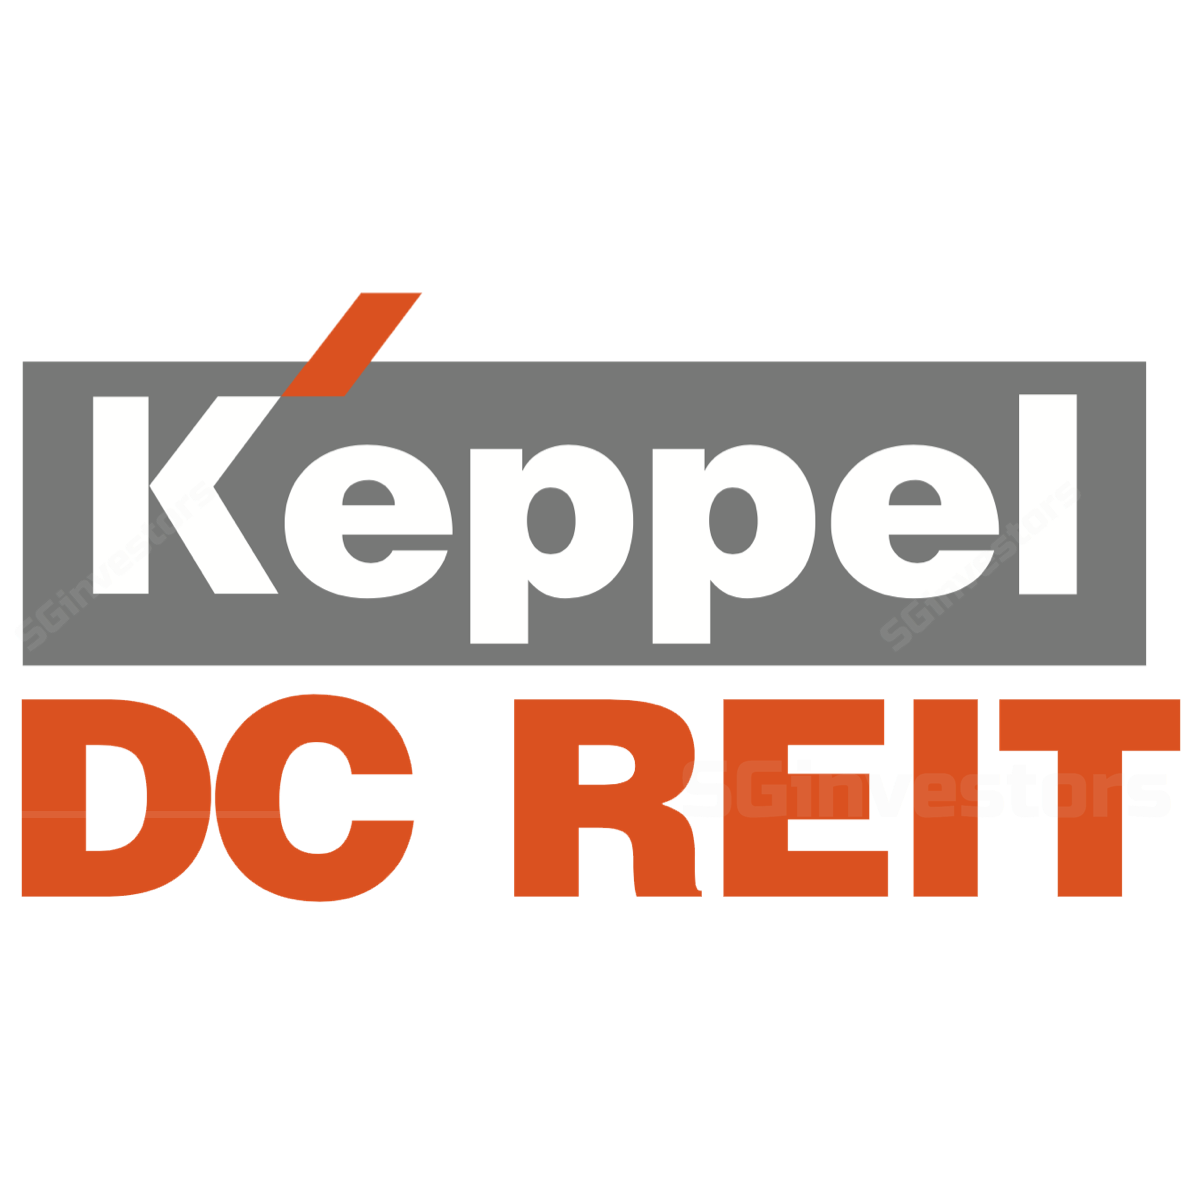 Keppel DC REIT - CIMB Research 2017-02-28: Time to upsize your data